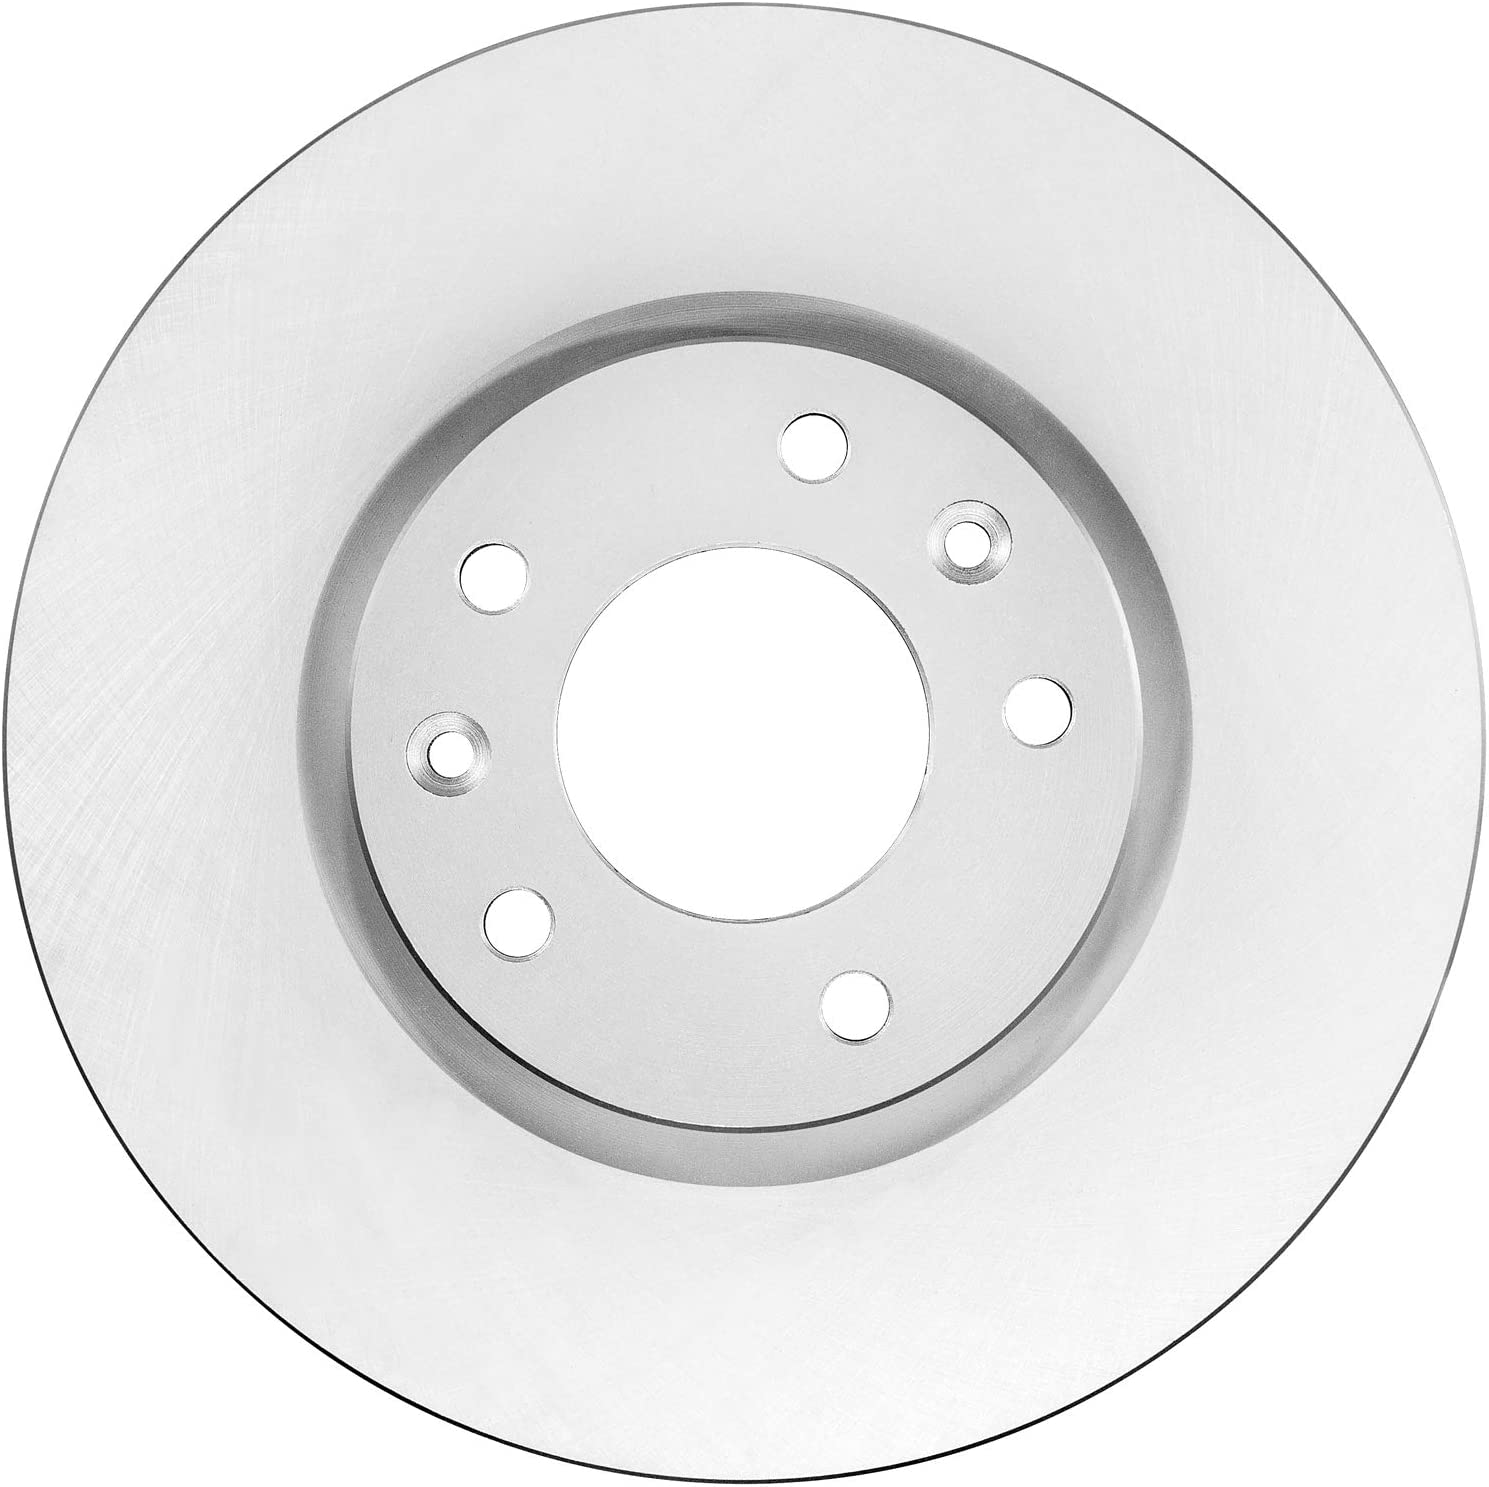 New Disc Brake Rotor 40% OFF Cheap Sale for 6 MKZ Ranking TOP1 Zephyr Milan Fusion